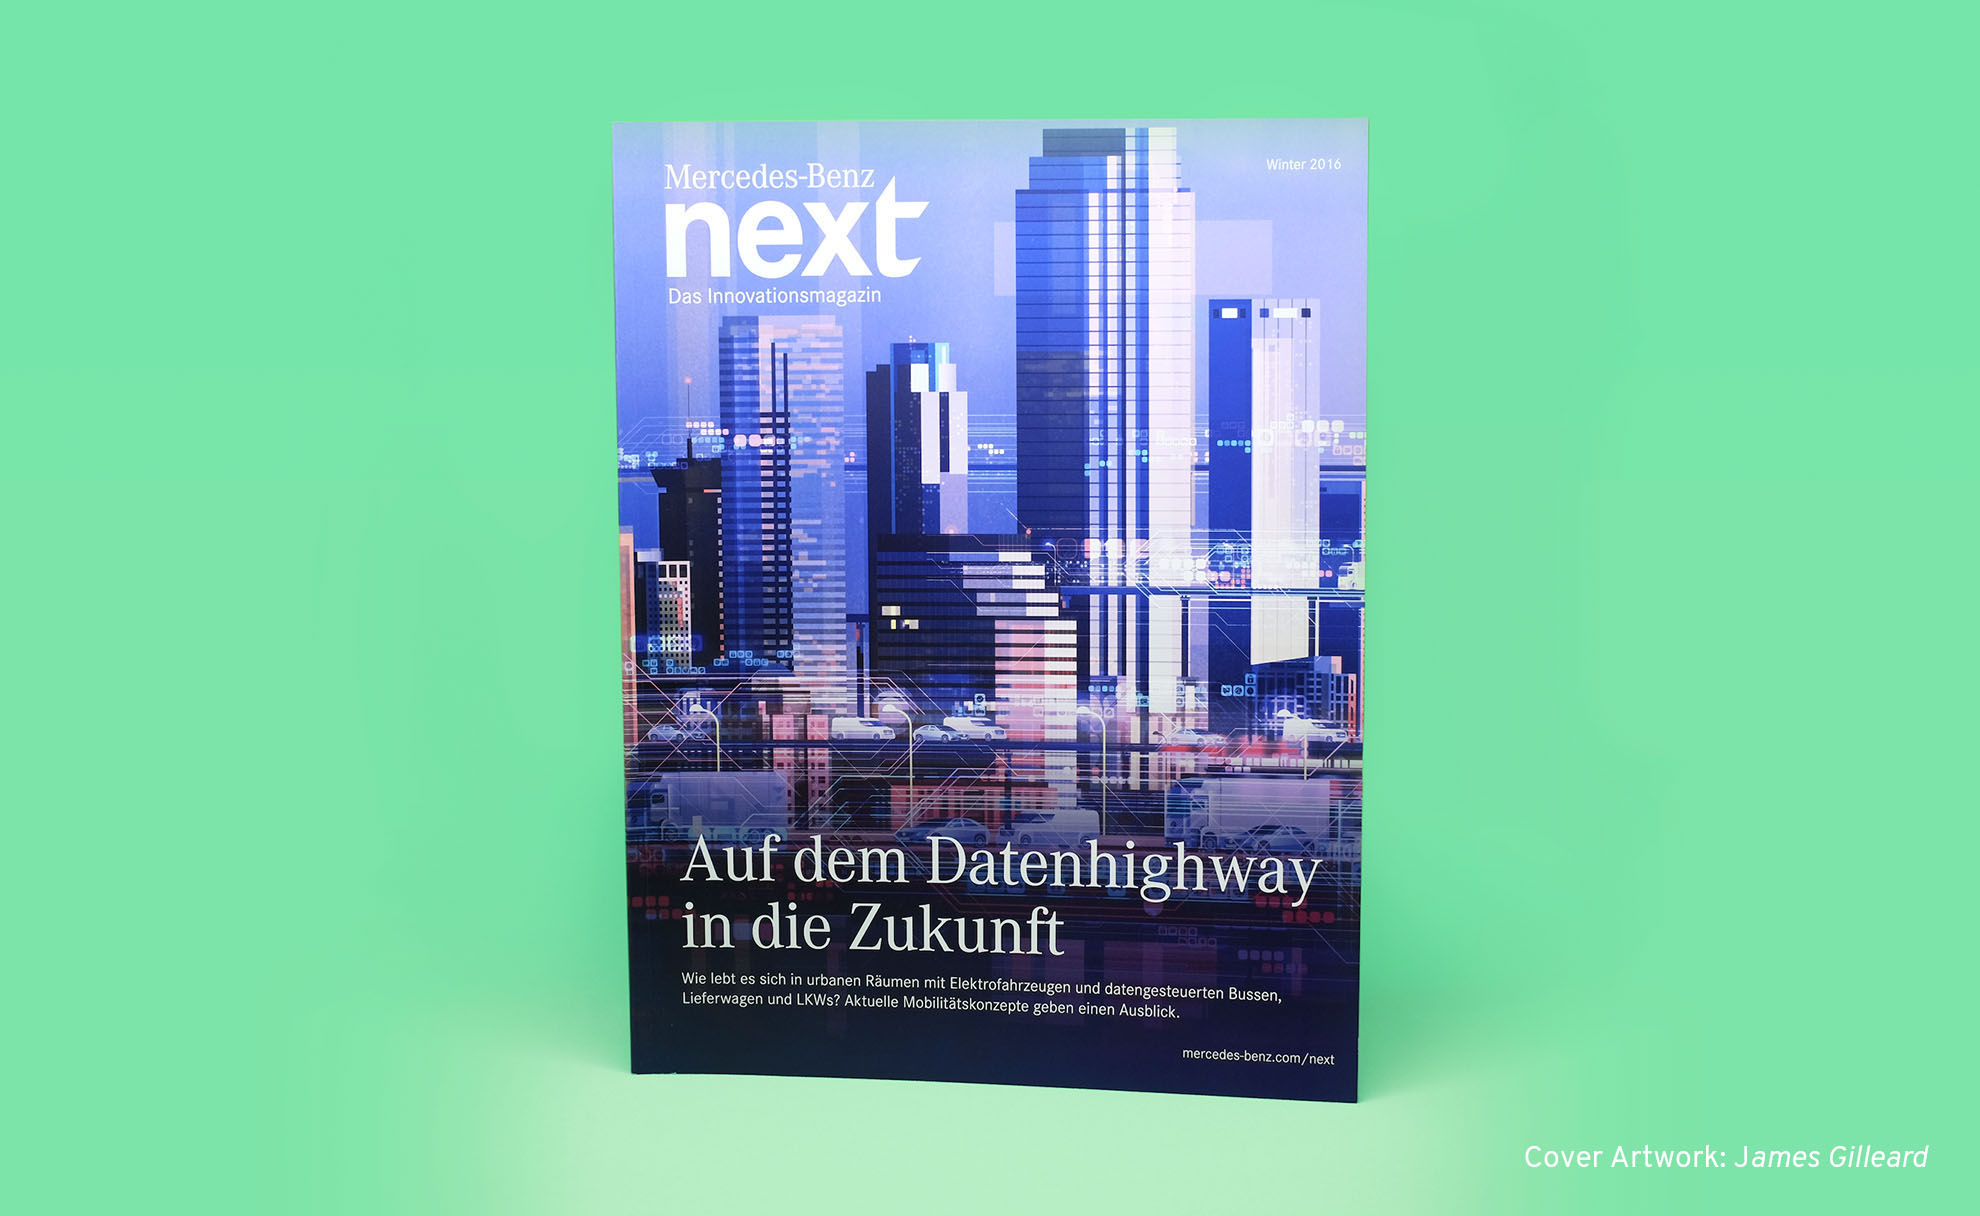 Normform Mercedes-Benz next Magazin